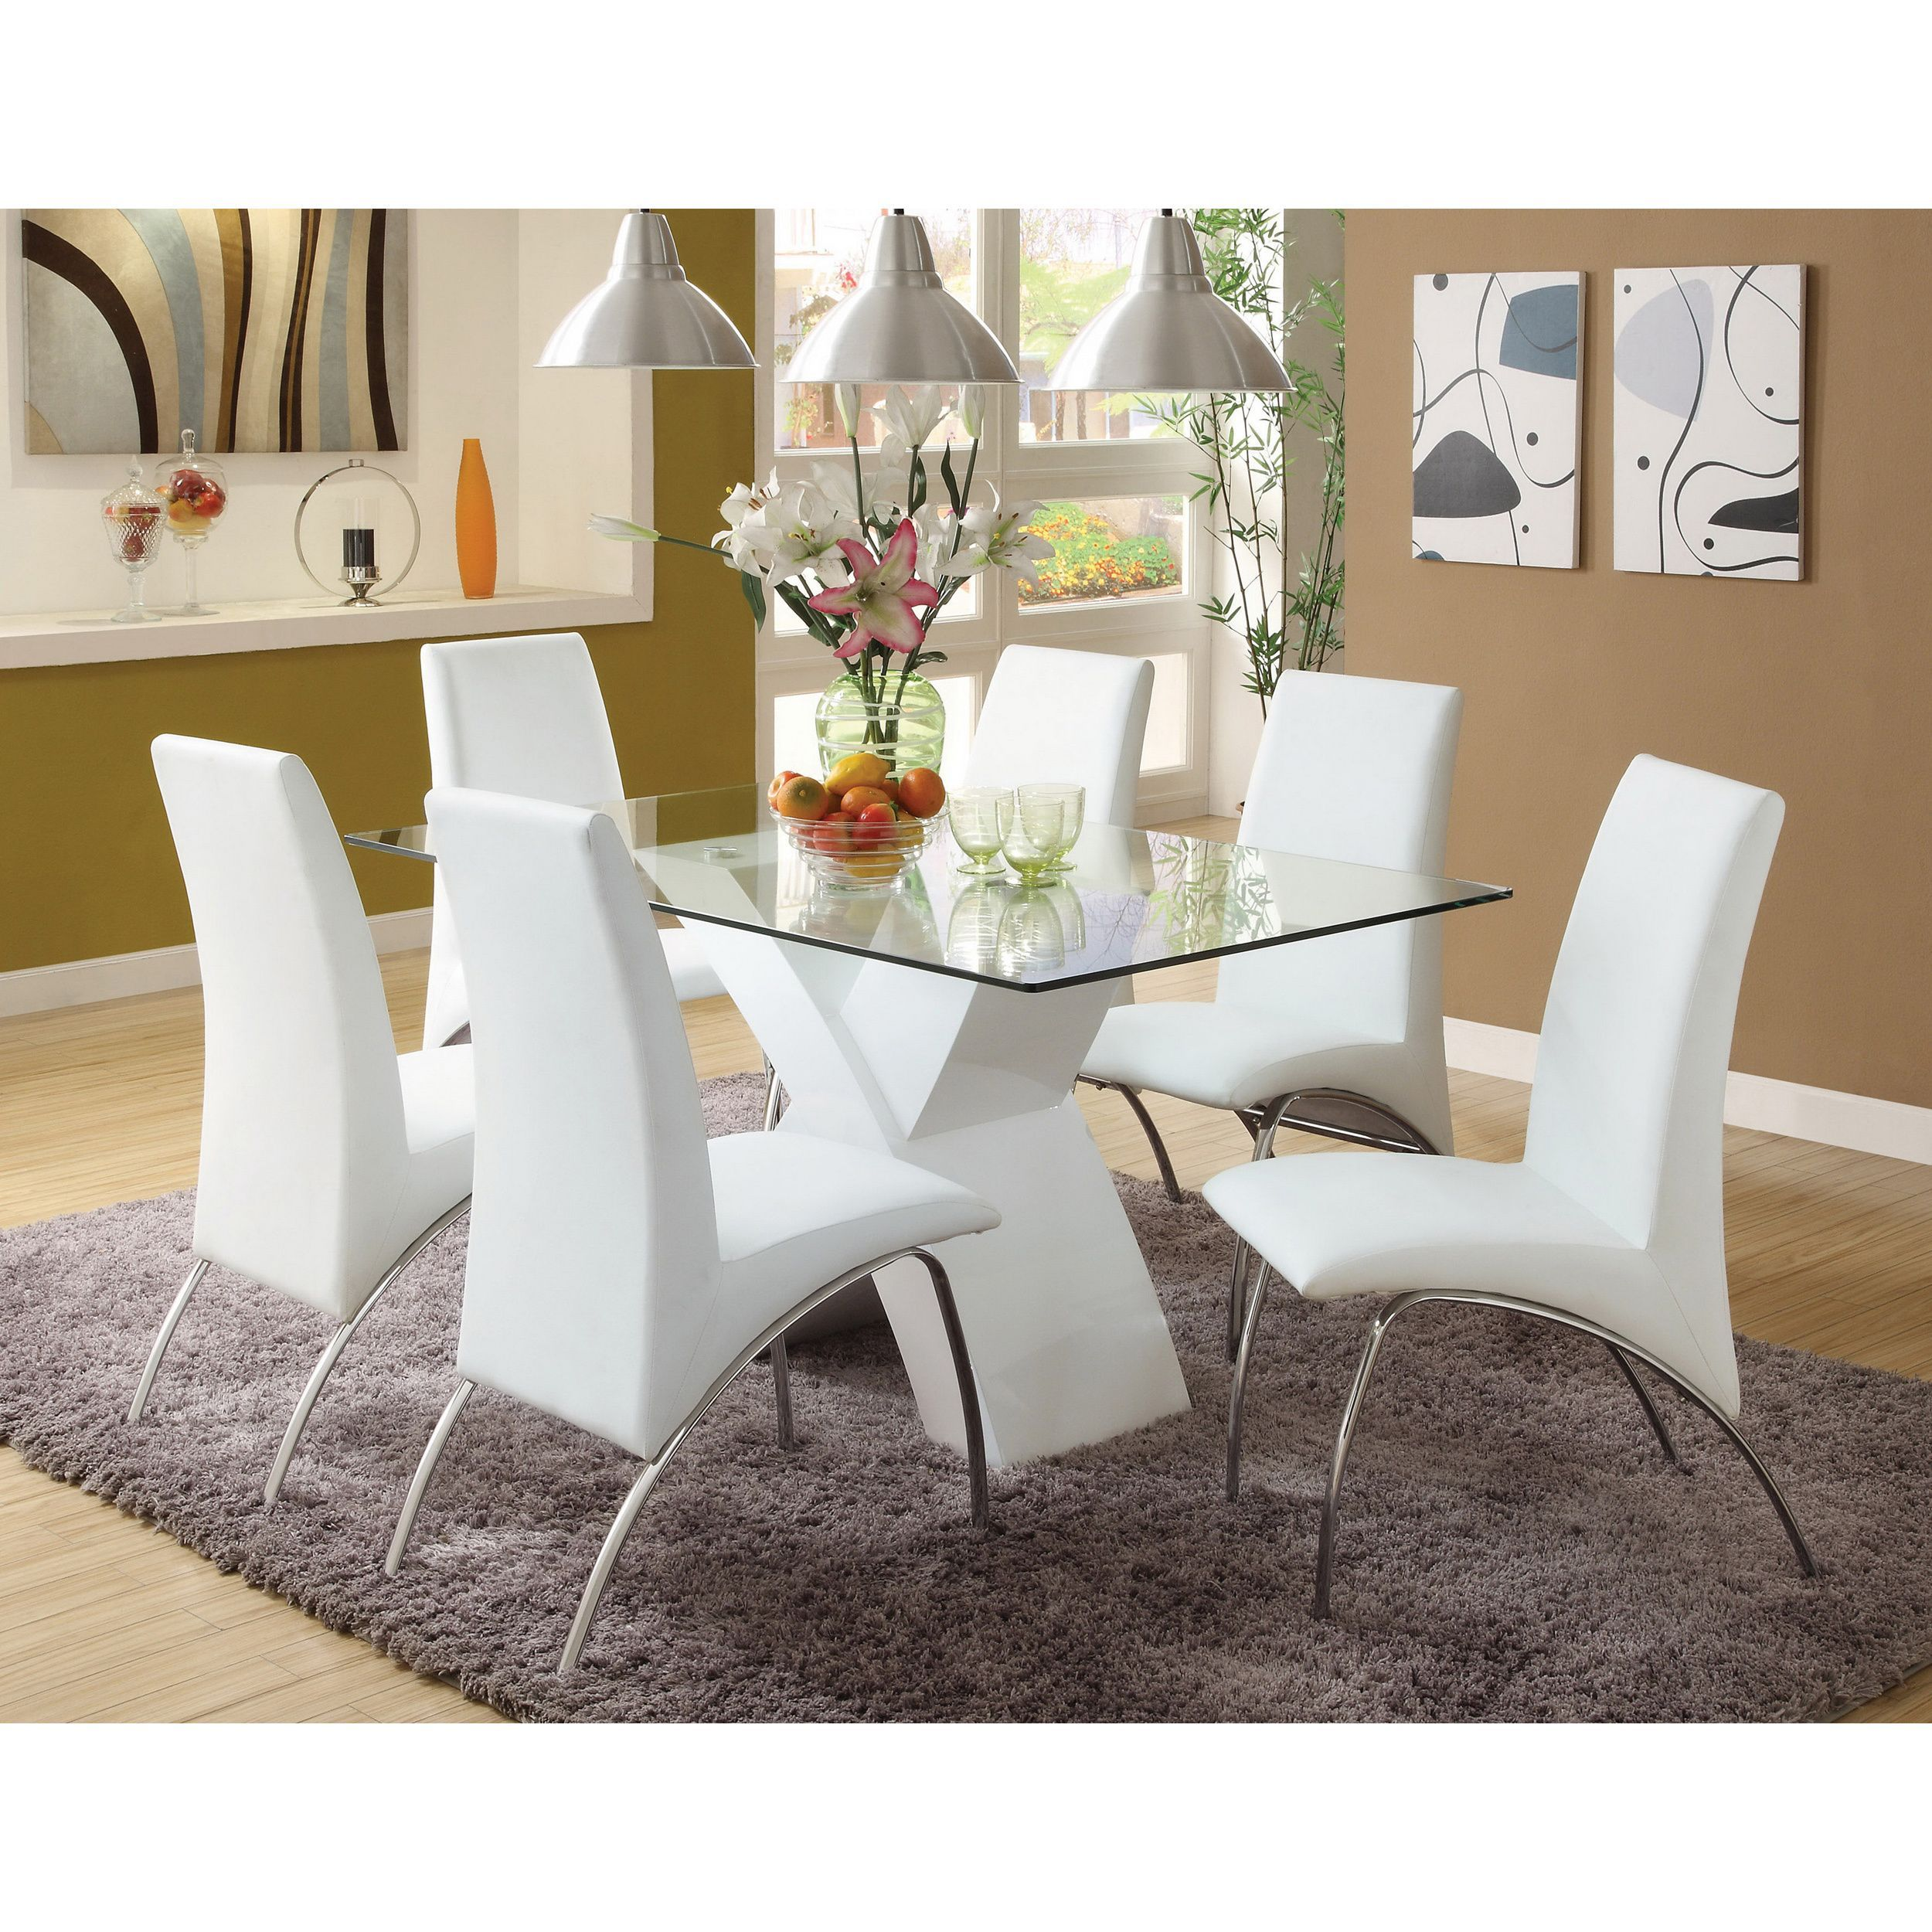 5923e4ce71 Furniture of America Chambers 7-piece Contemporary Glass Top Dining Set  (White), Size 7-Piece Sets